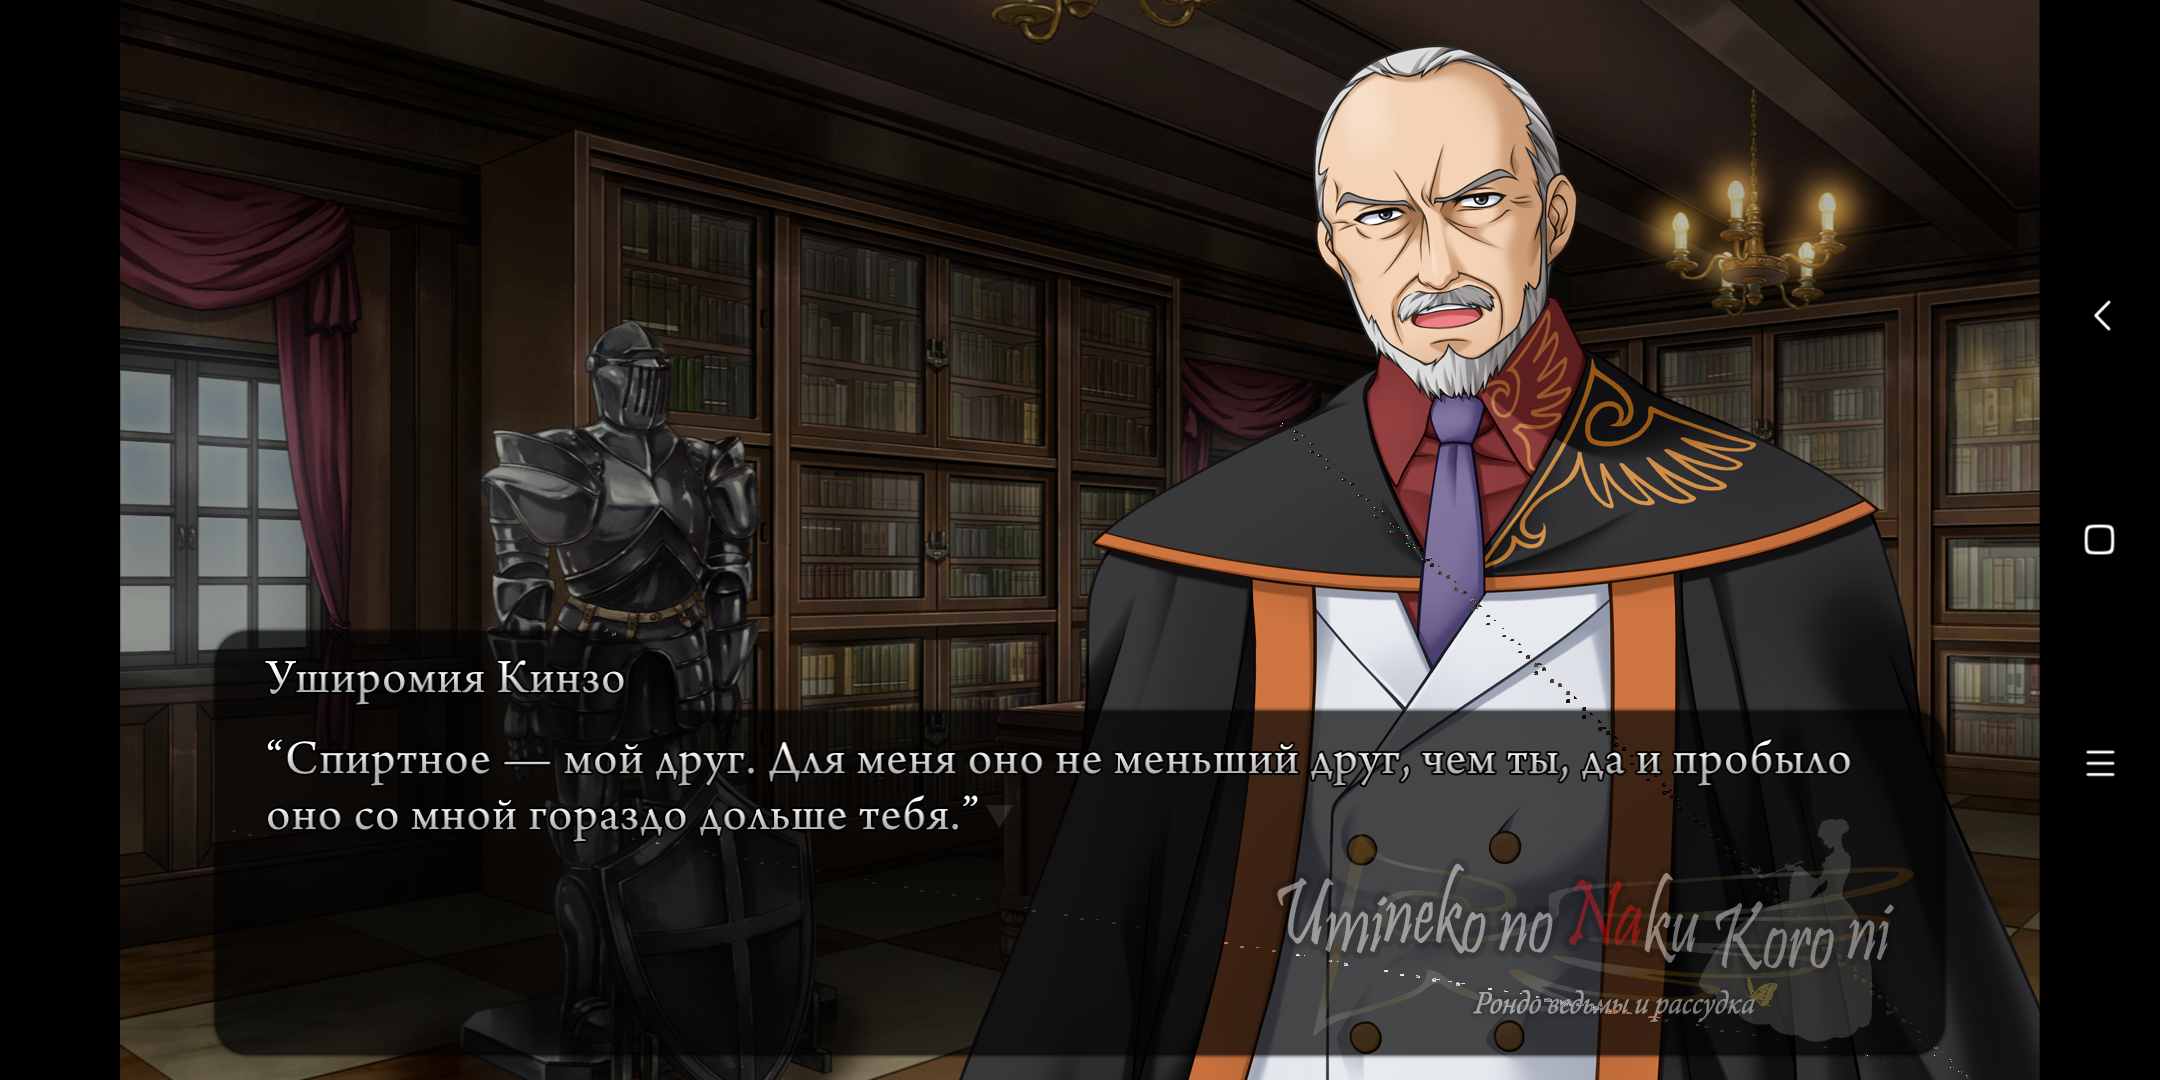 Screenshot_2019-04-23-15-48-07-097_org.umineko_project.onscripter_ru.png